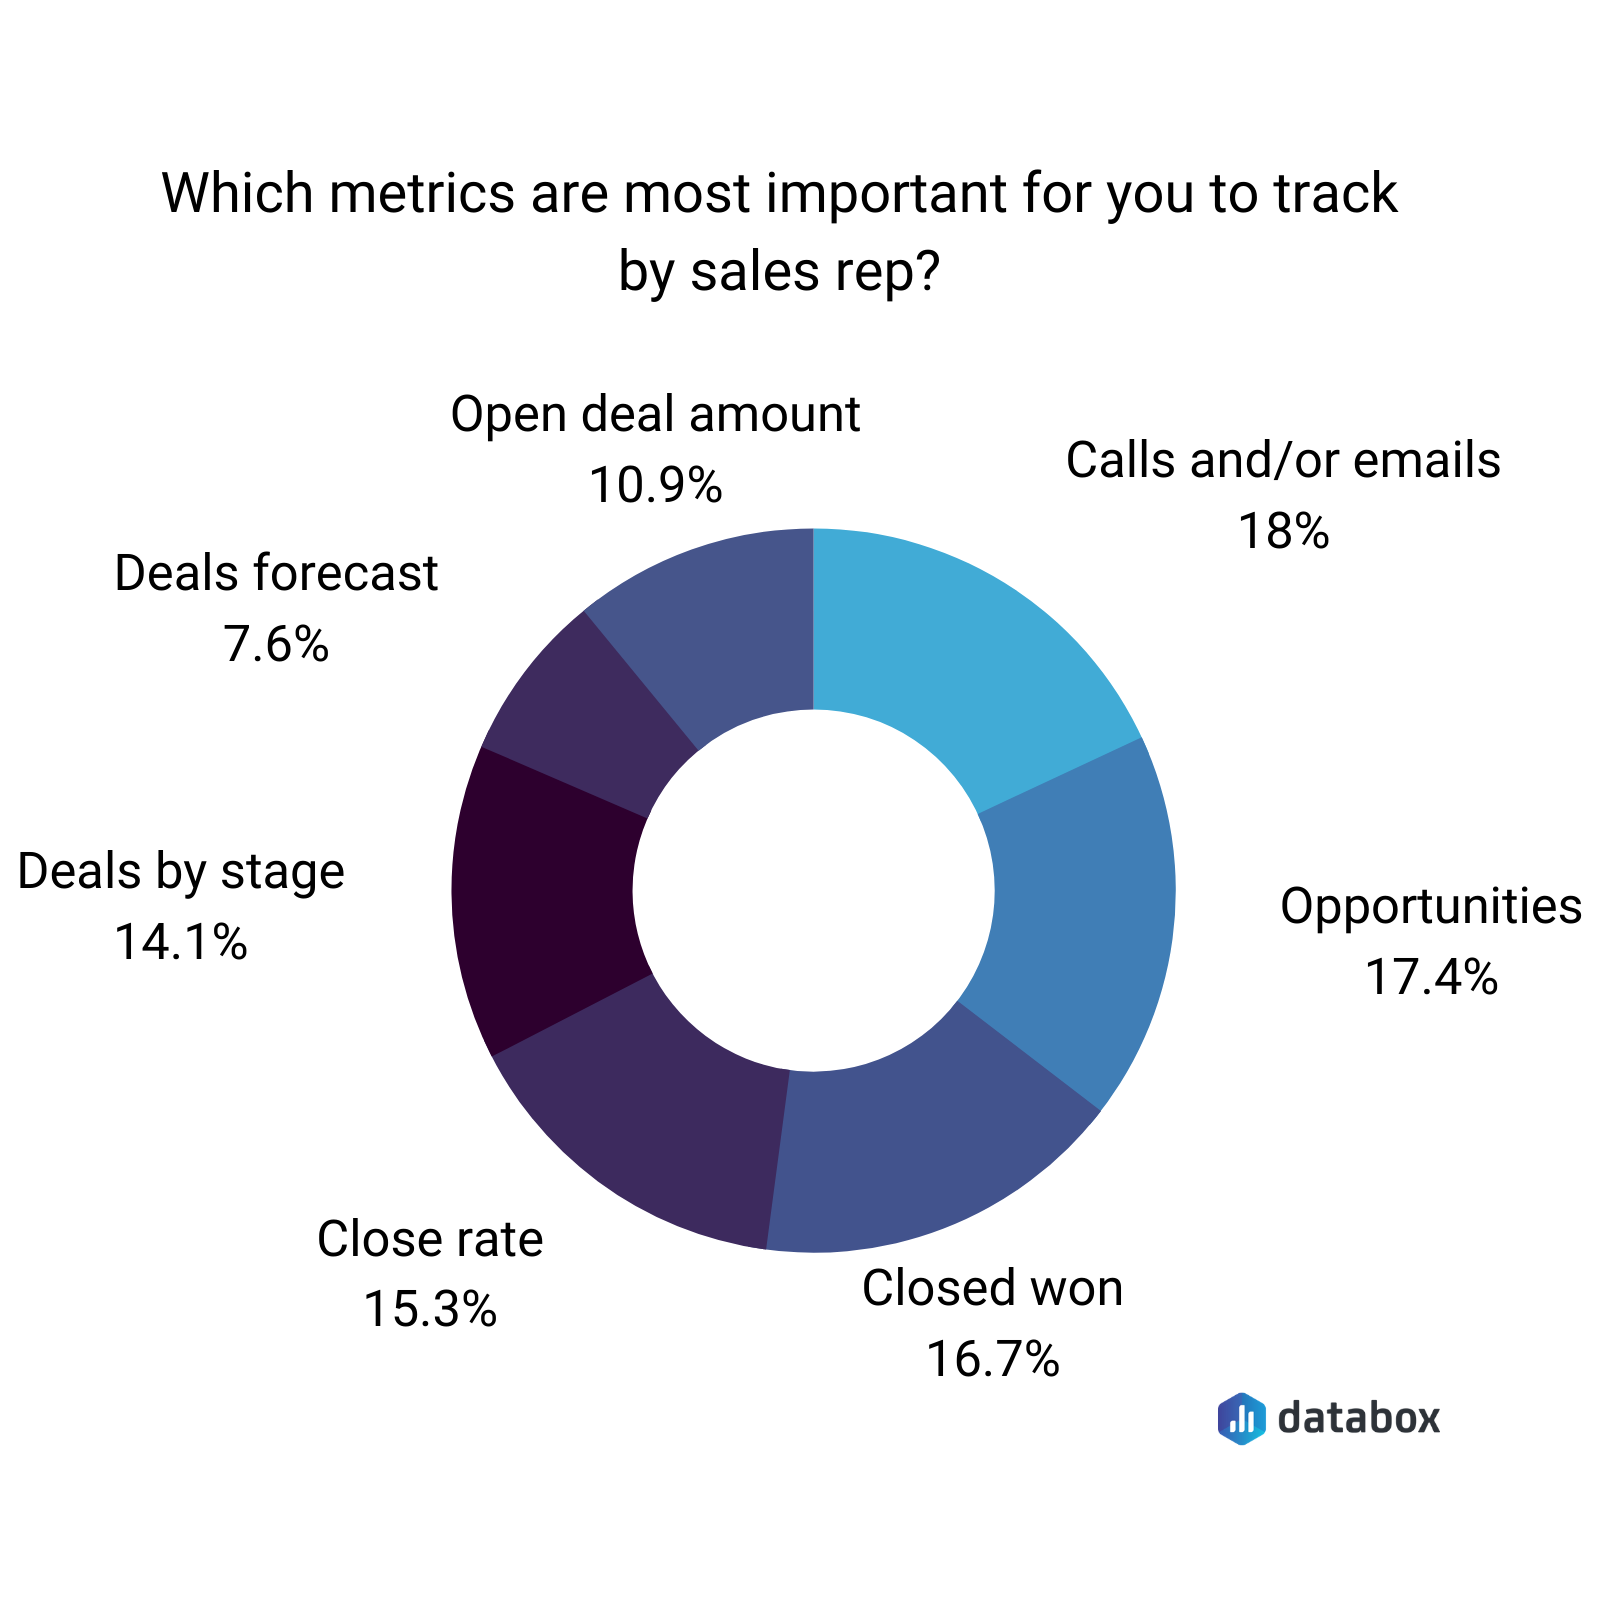 which metrics are most important for you to track by sales rep